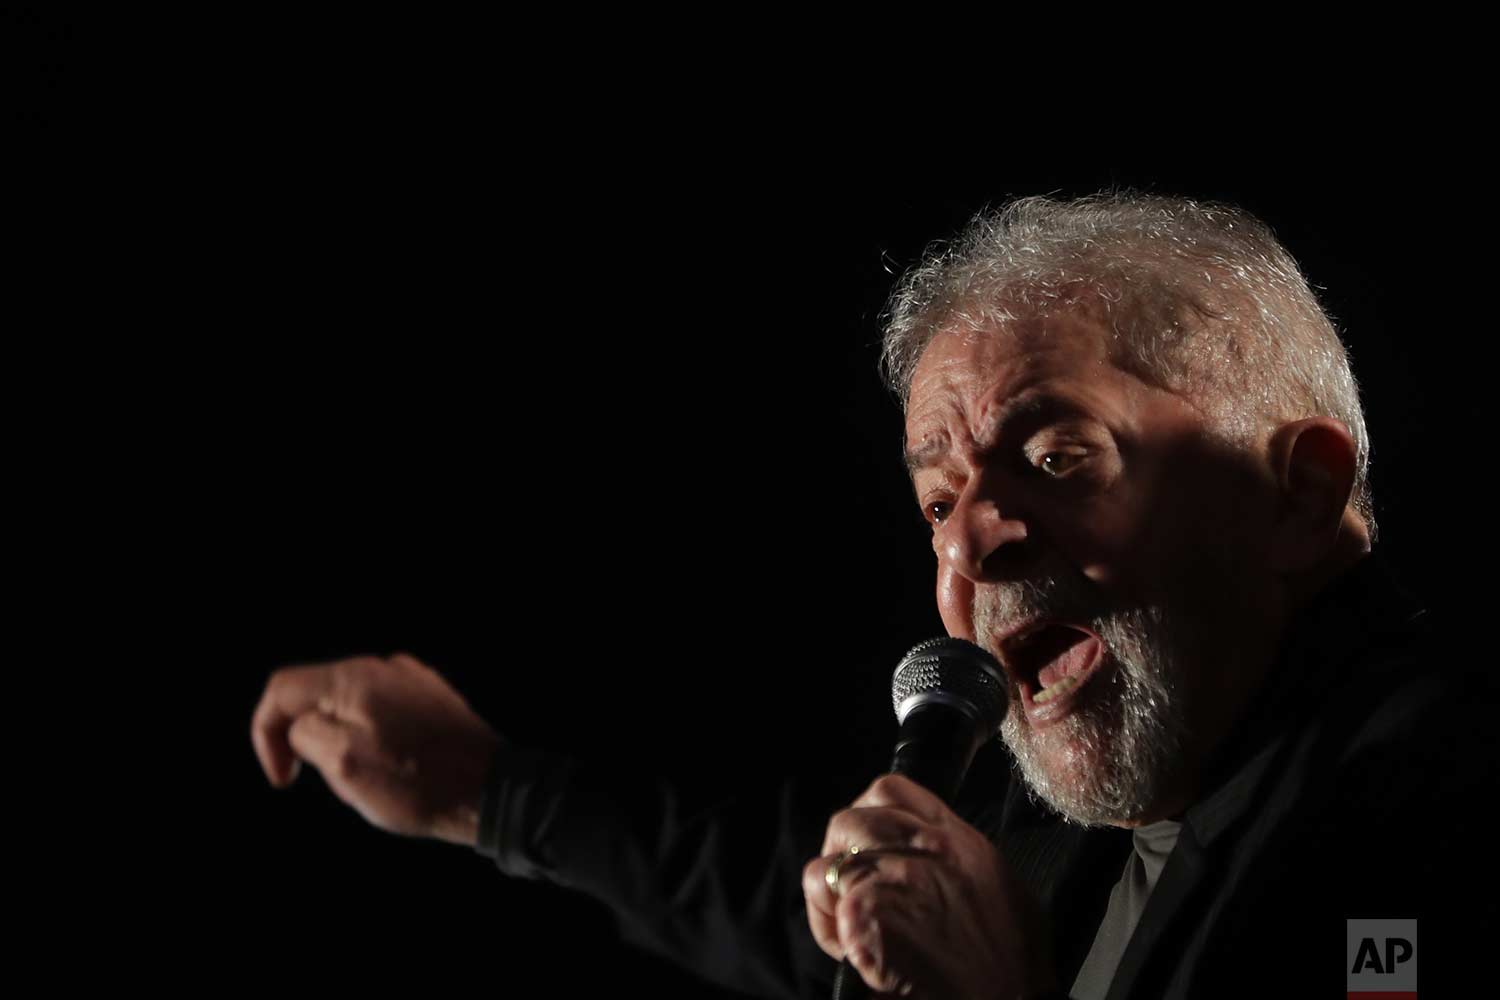 Brazil's former President Luiz Inacio Lula da Silva addresses supporters protesting his conviction in Sao Paulo, Brazil, Thursday, July 20, 2017, after a judge ordered the seizure of more than $2.8 million in pension funds from Silva in connection with his corruption conviction. (AP Photo/Andre Penner)